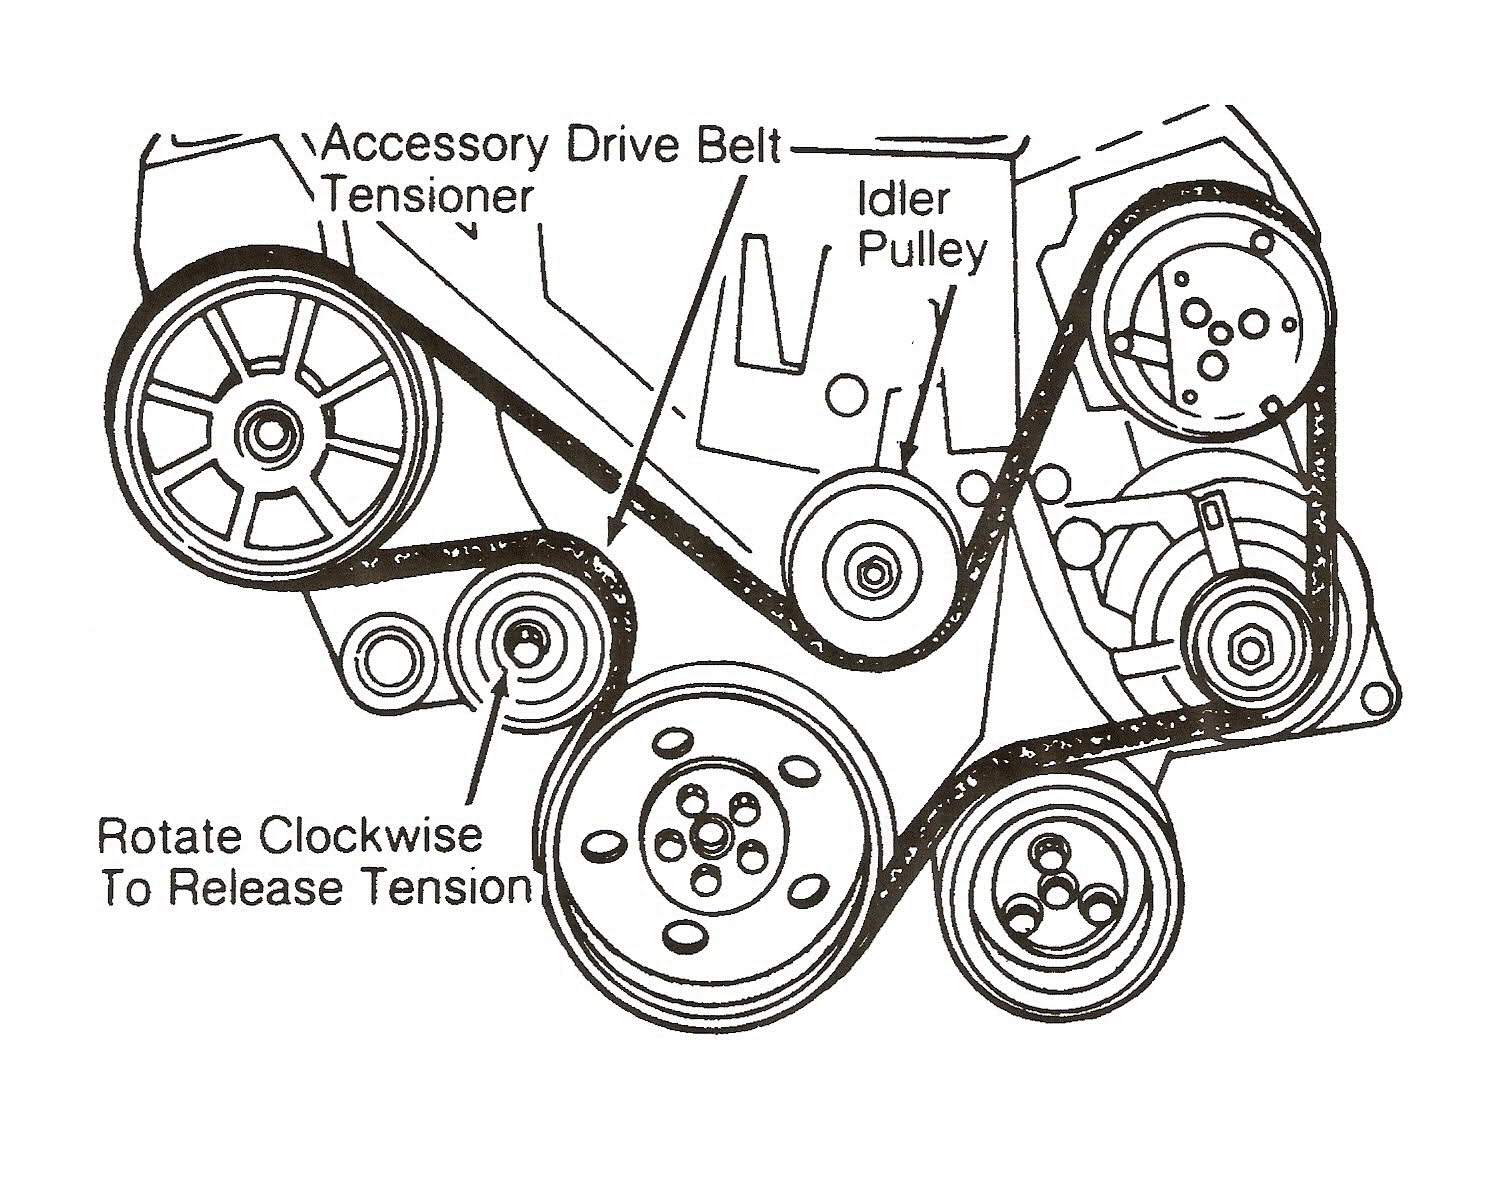 2007 2010 Nissan Altima 3 5l Serpentine Belt Diagram on 2002 chevy s10 fan belt diagram